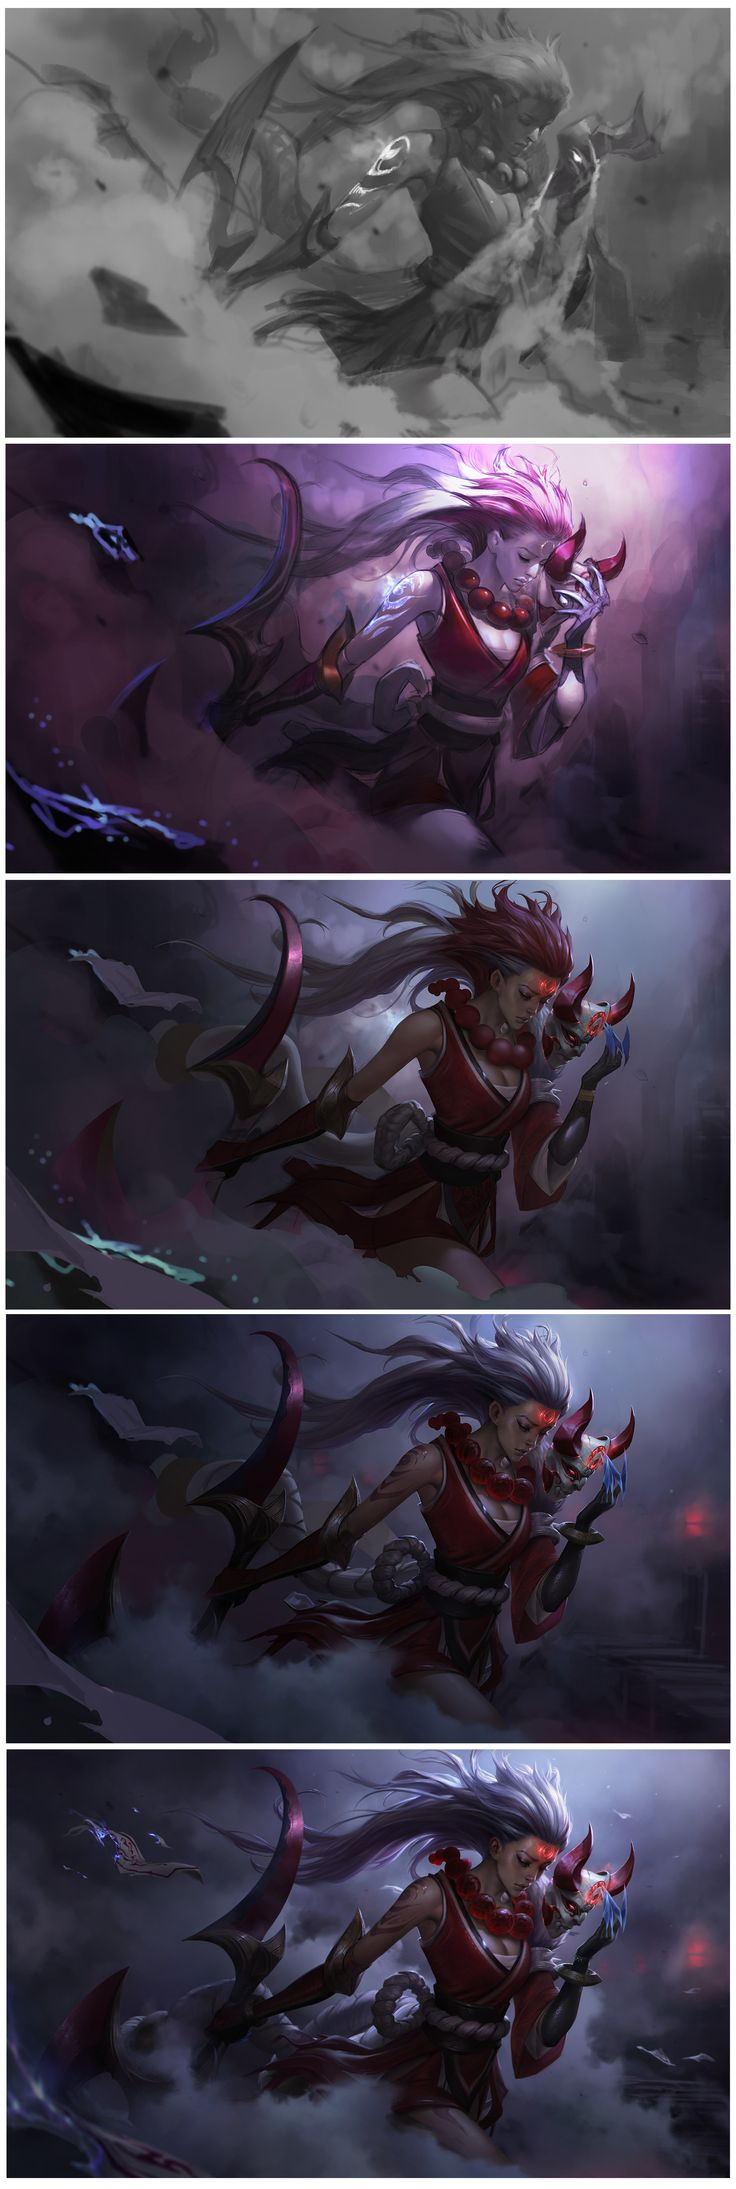 ArtStation - Blood Moon Diana for League of Legends, Chengwei Pan